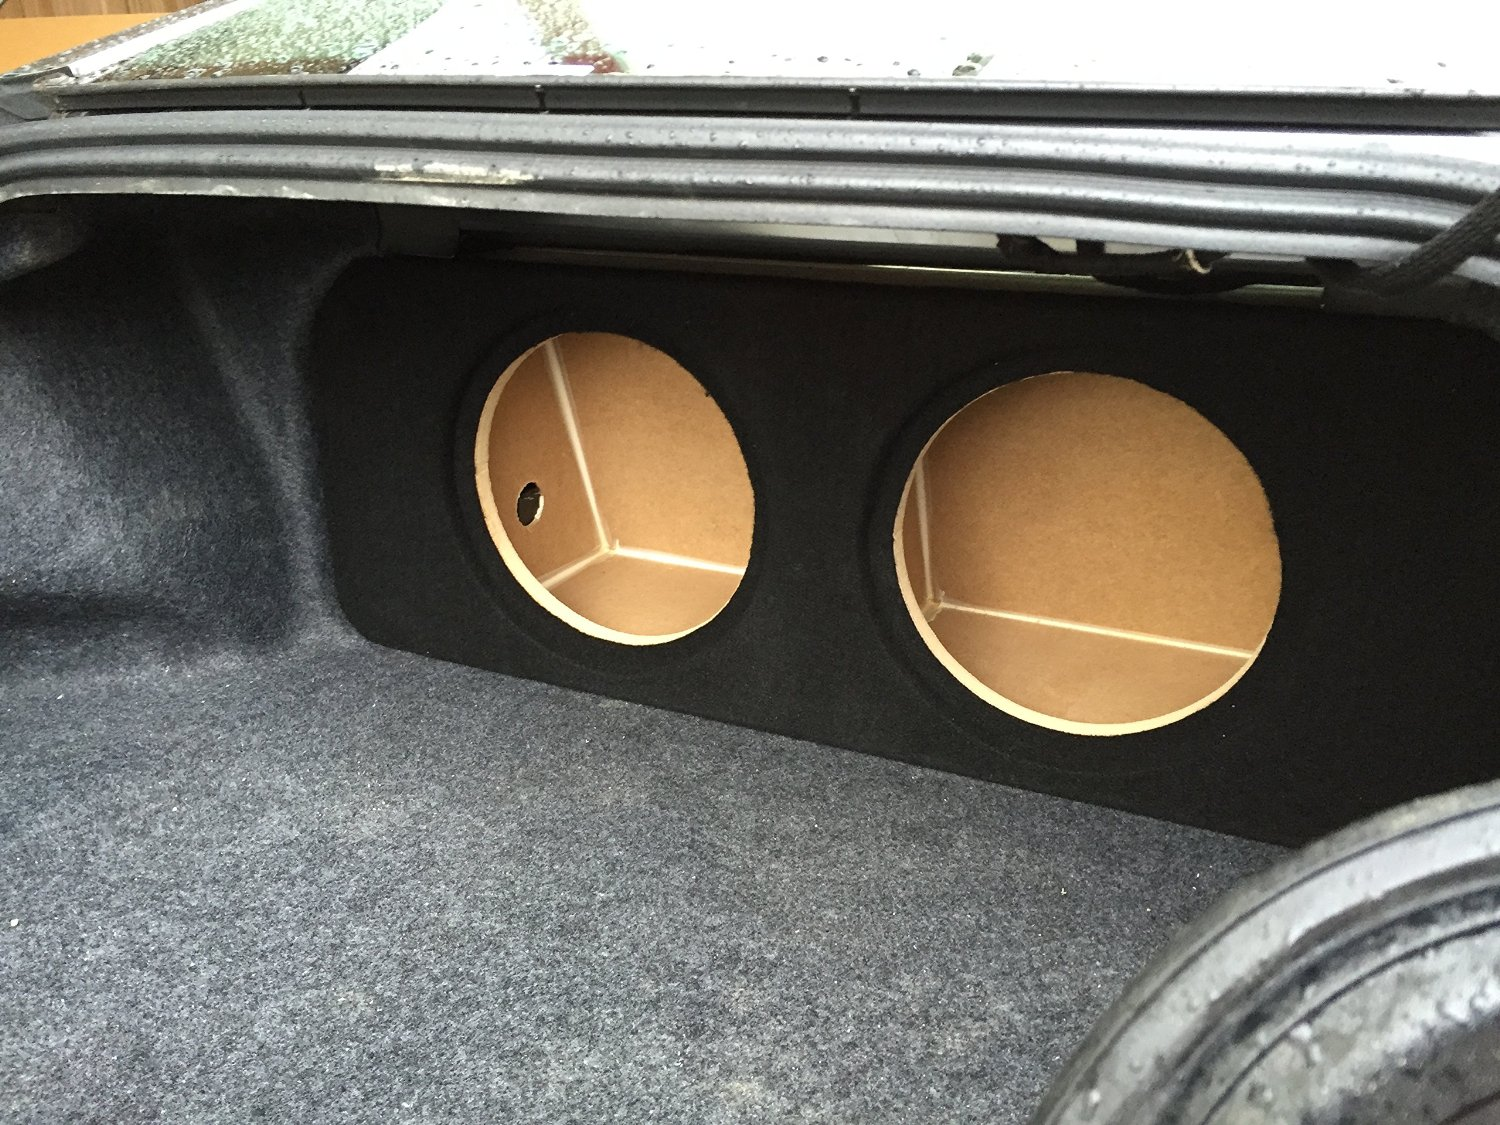 Zenclosures 2019 Mustang 2-12 Subwoofer Box W//recessed Mounting Holes Charcoal Version 2 Front FIRE